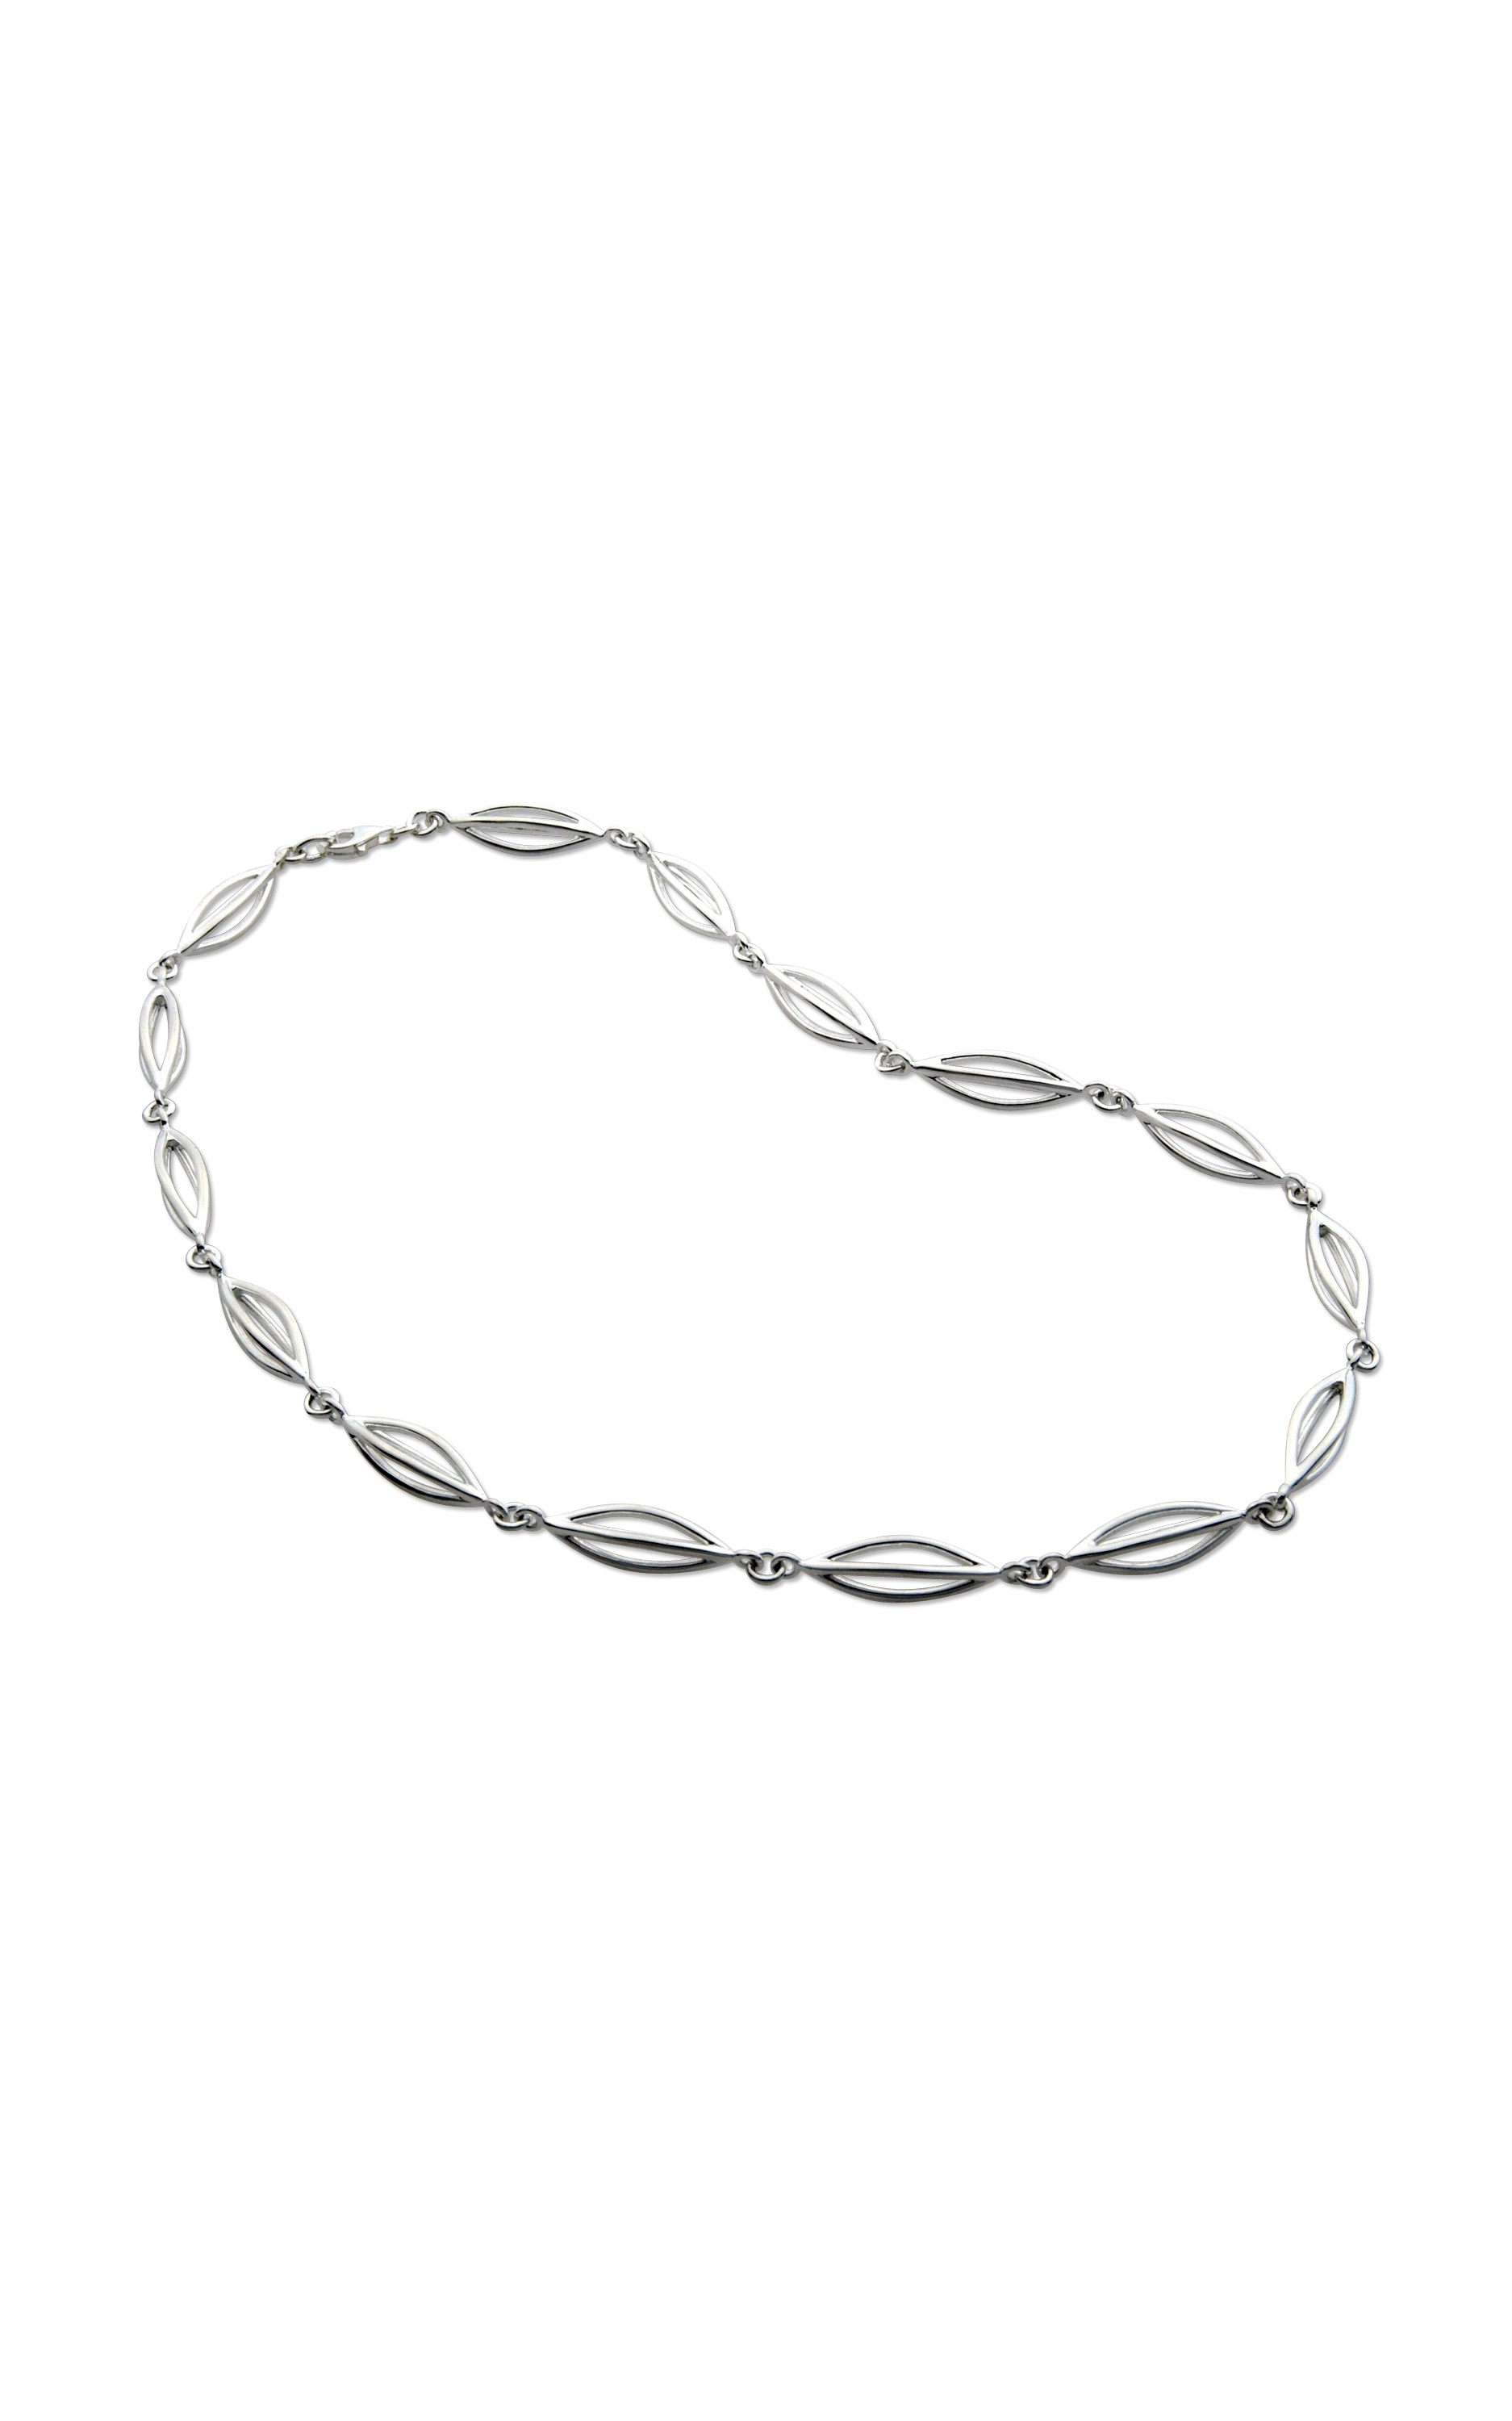 Zina Contemporary Necklace A326-17 product image